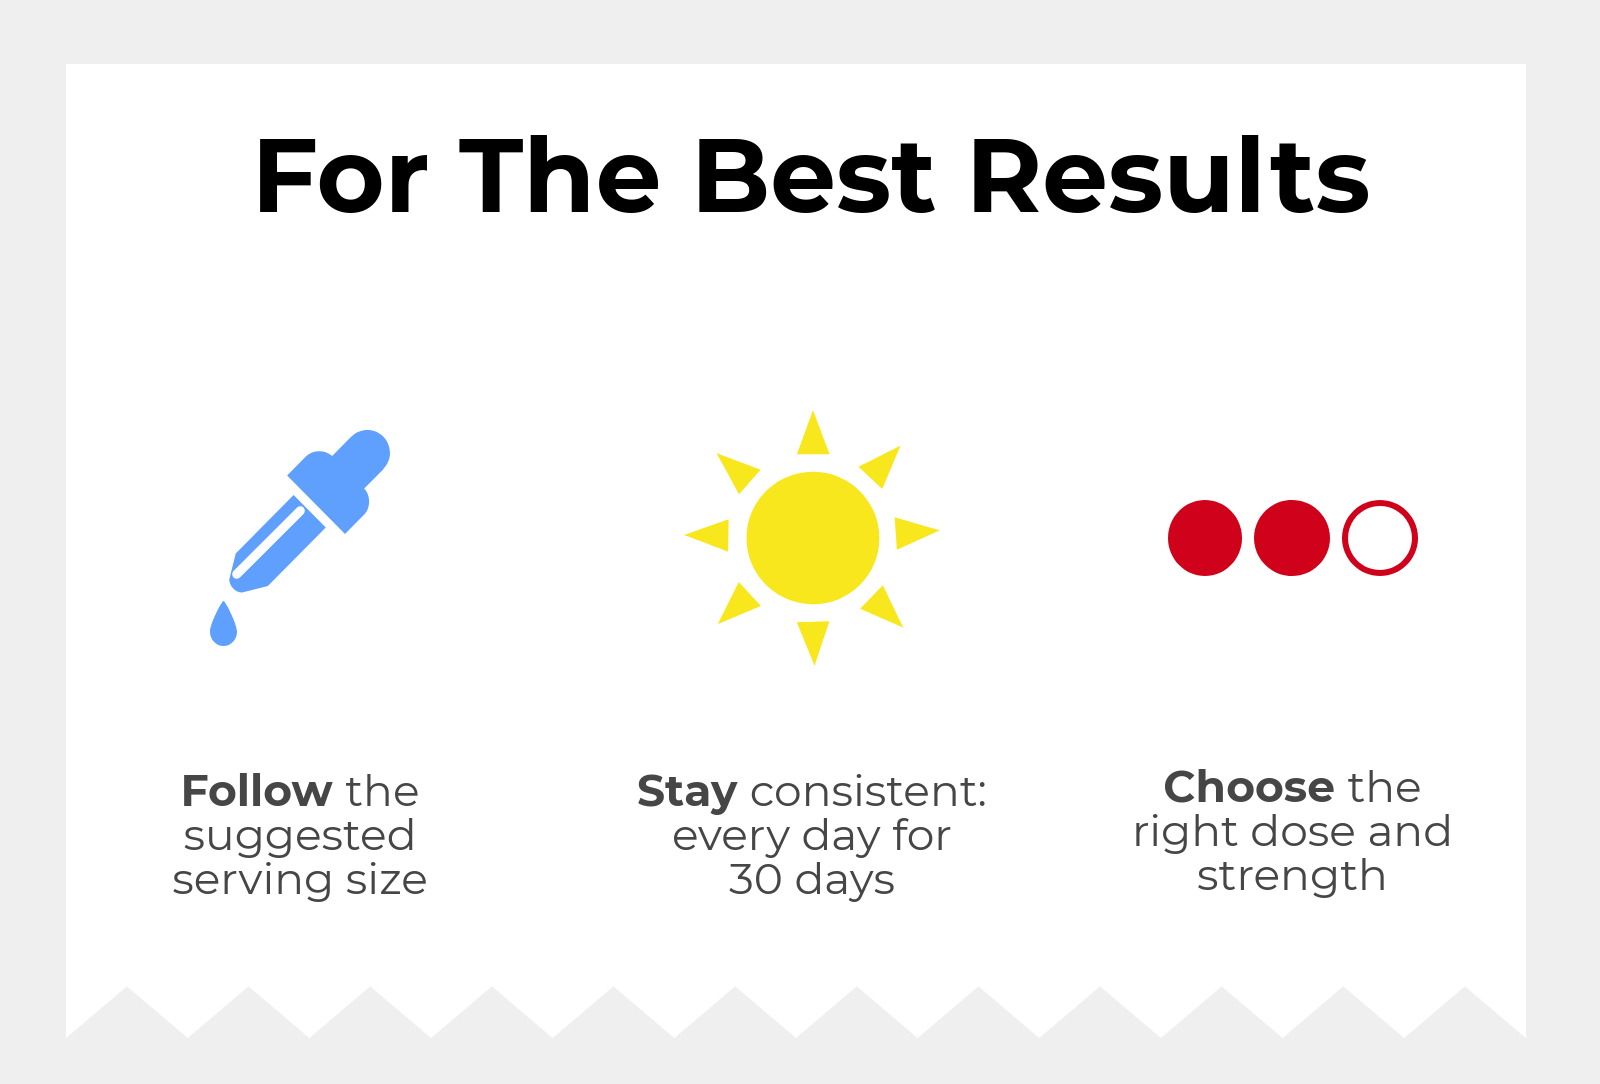 For the best results: Follow the suggested serving size. Stay consistent: every day for 30 days. Choose the right dose and strength